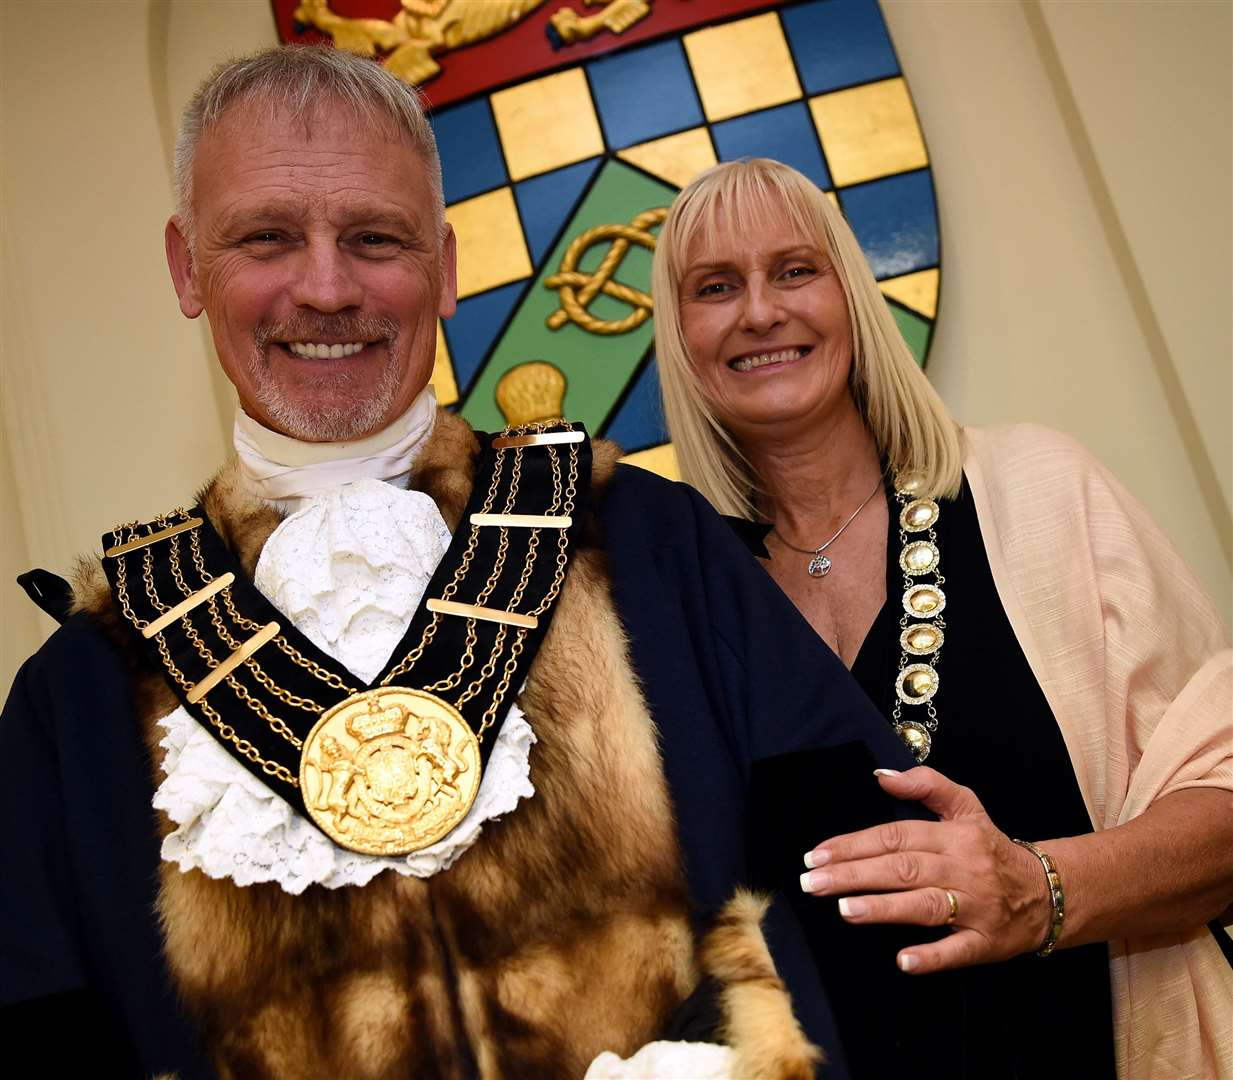 New mayor of Grantham Coun Dean Ward with his wife and Mayoress Flo. (42307327)